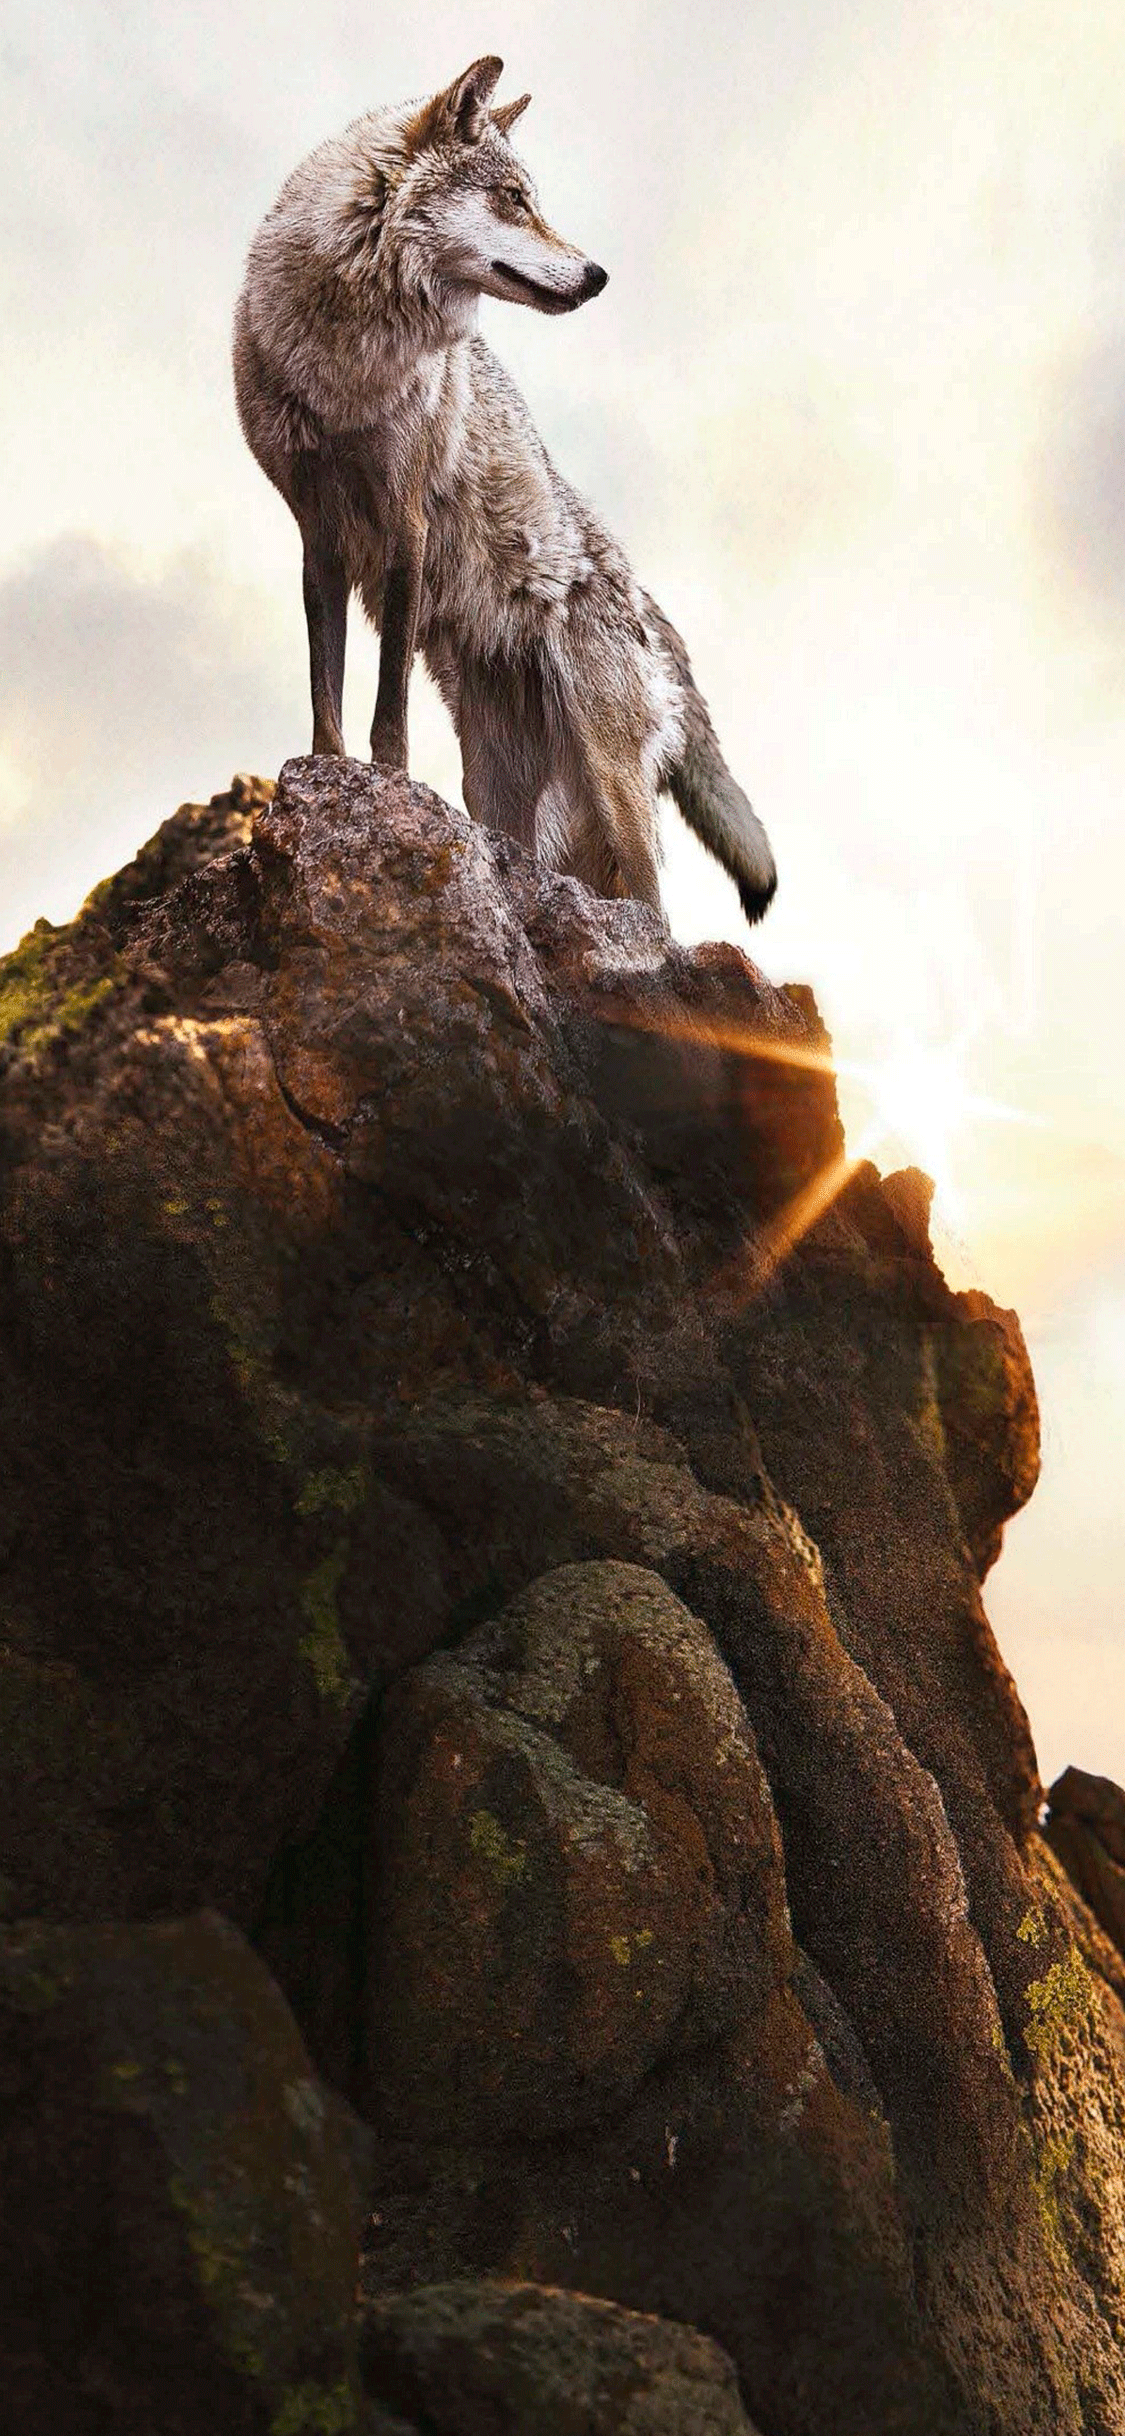 iPhone wallpaper wolf mountain Fonds d'écran iPhone du 16/07/2018